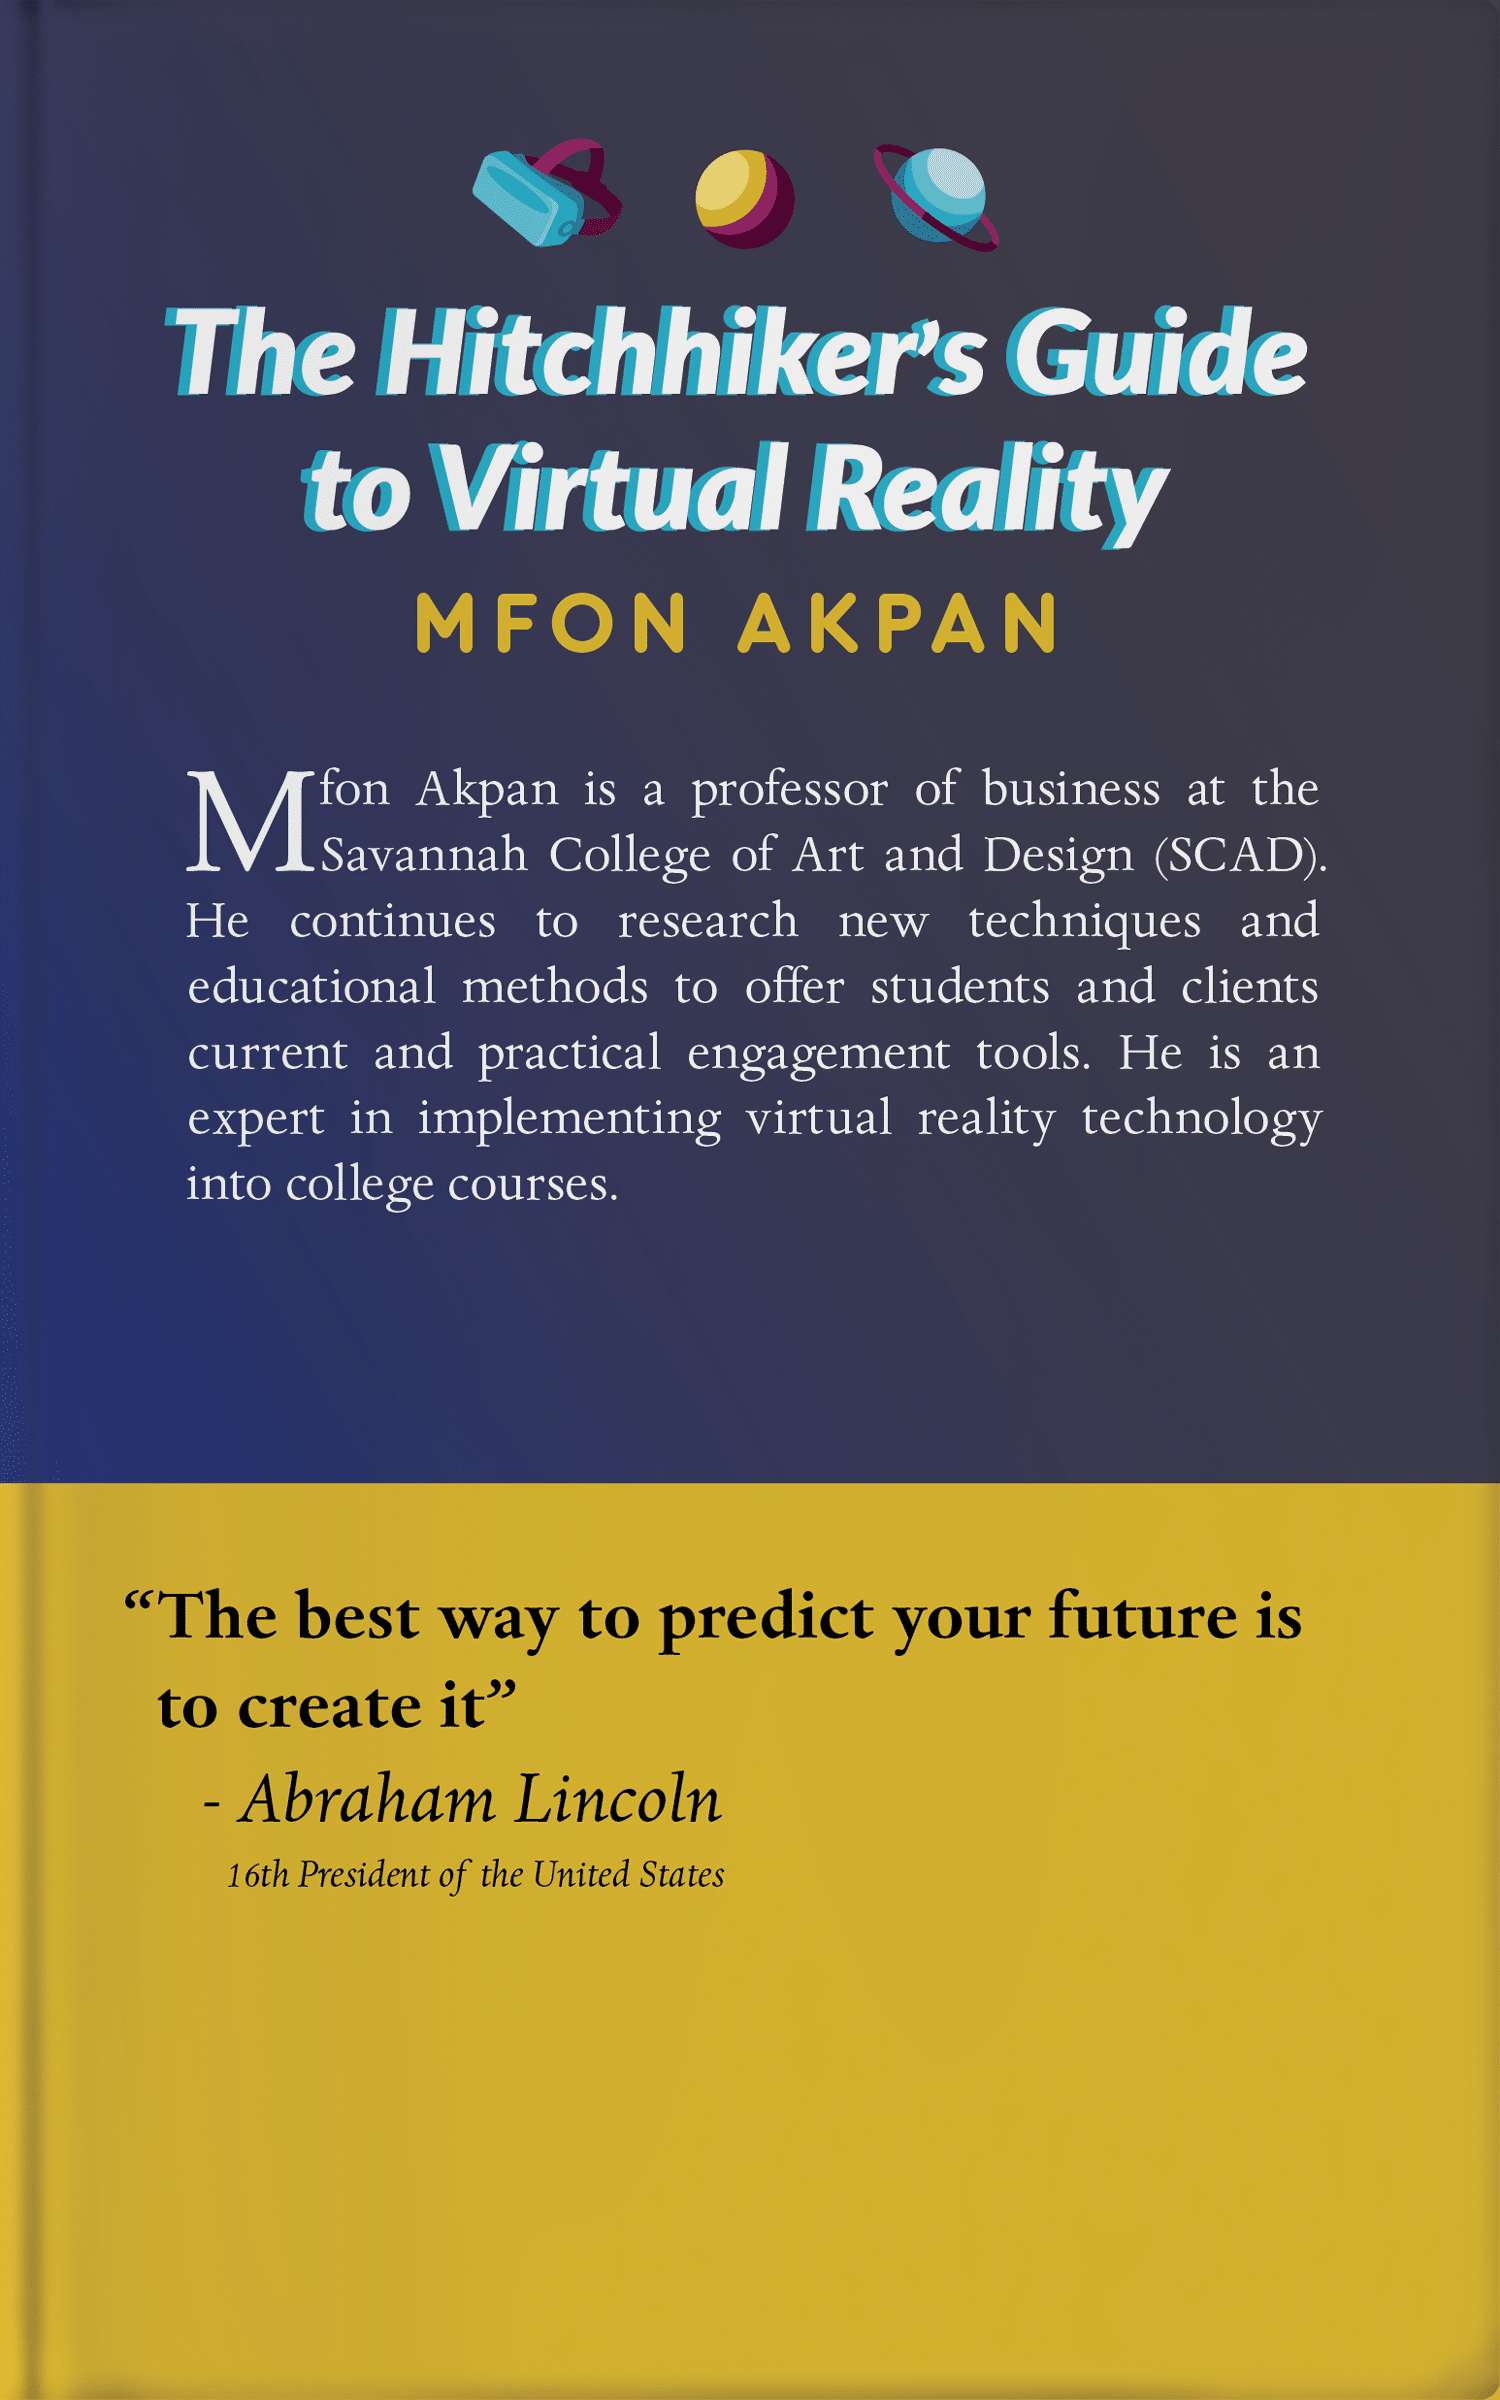 Hitchhiker's Guide to VR Back Cover